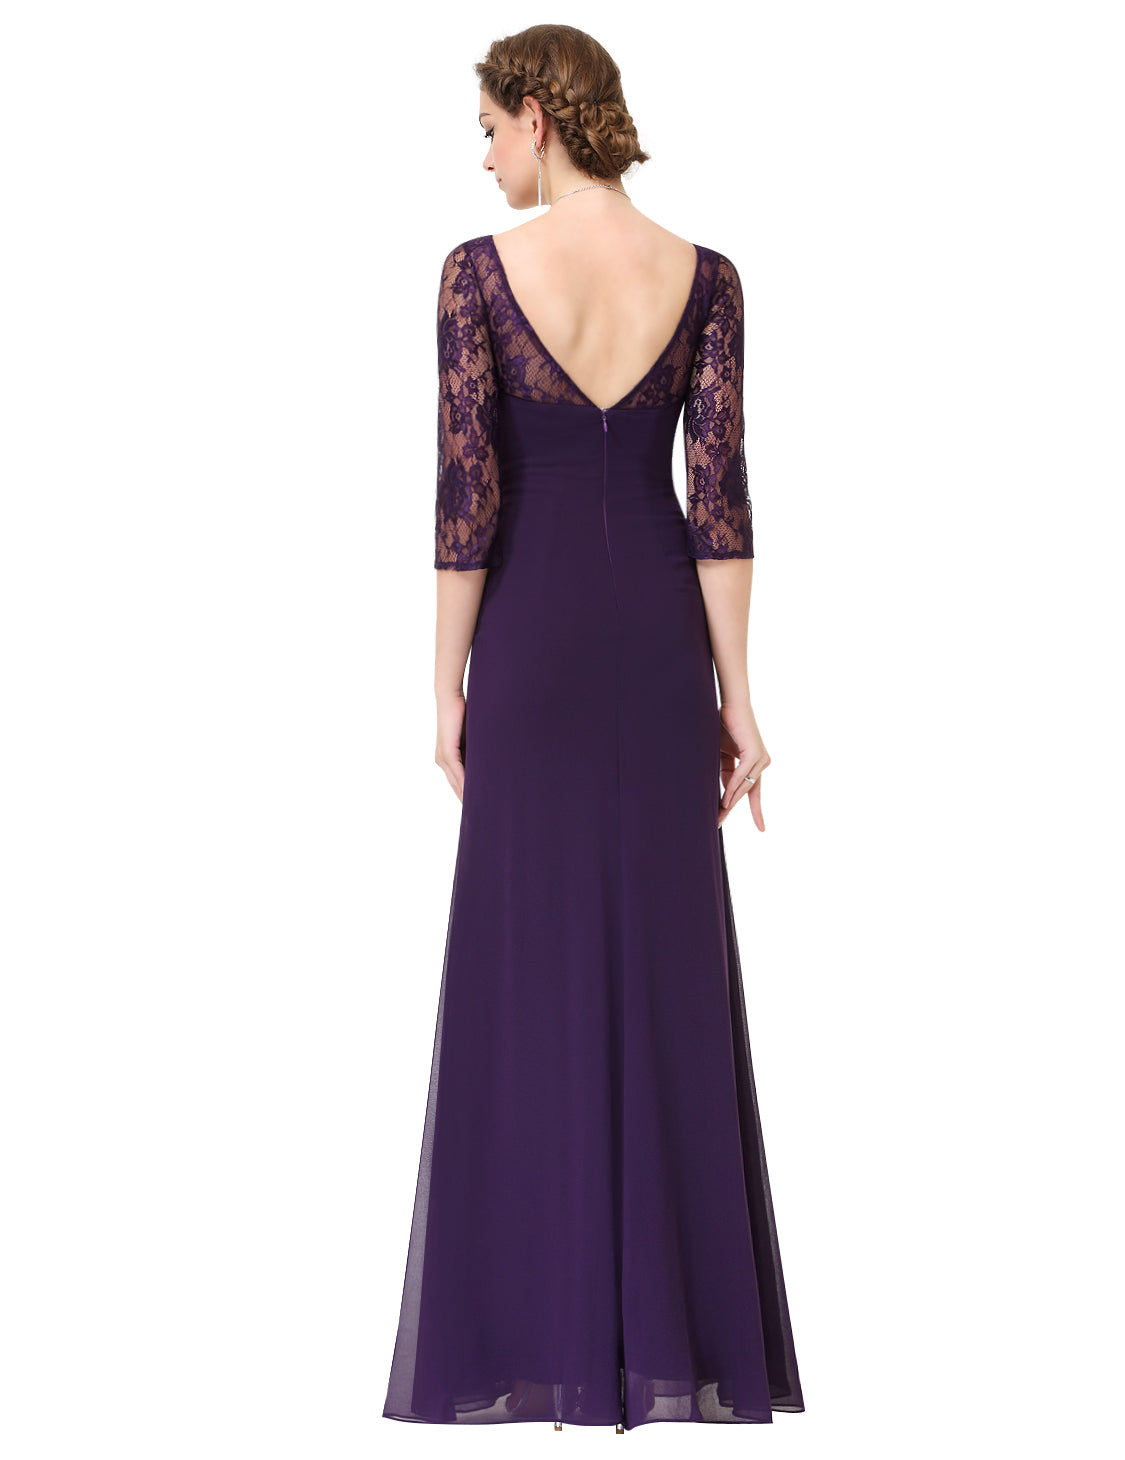 Obeige Elegant Purple V-neck Half Sleeve Evening Party Dress - O'beige